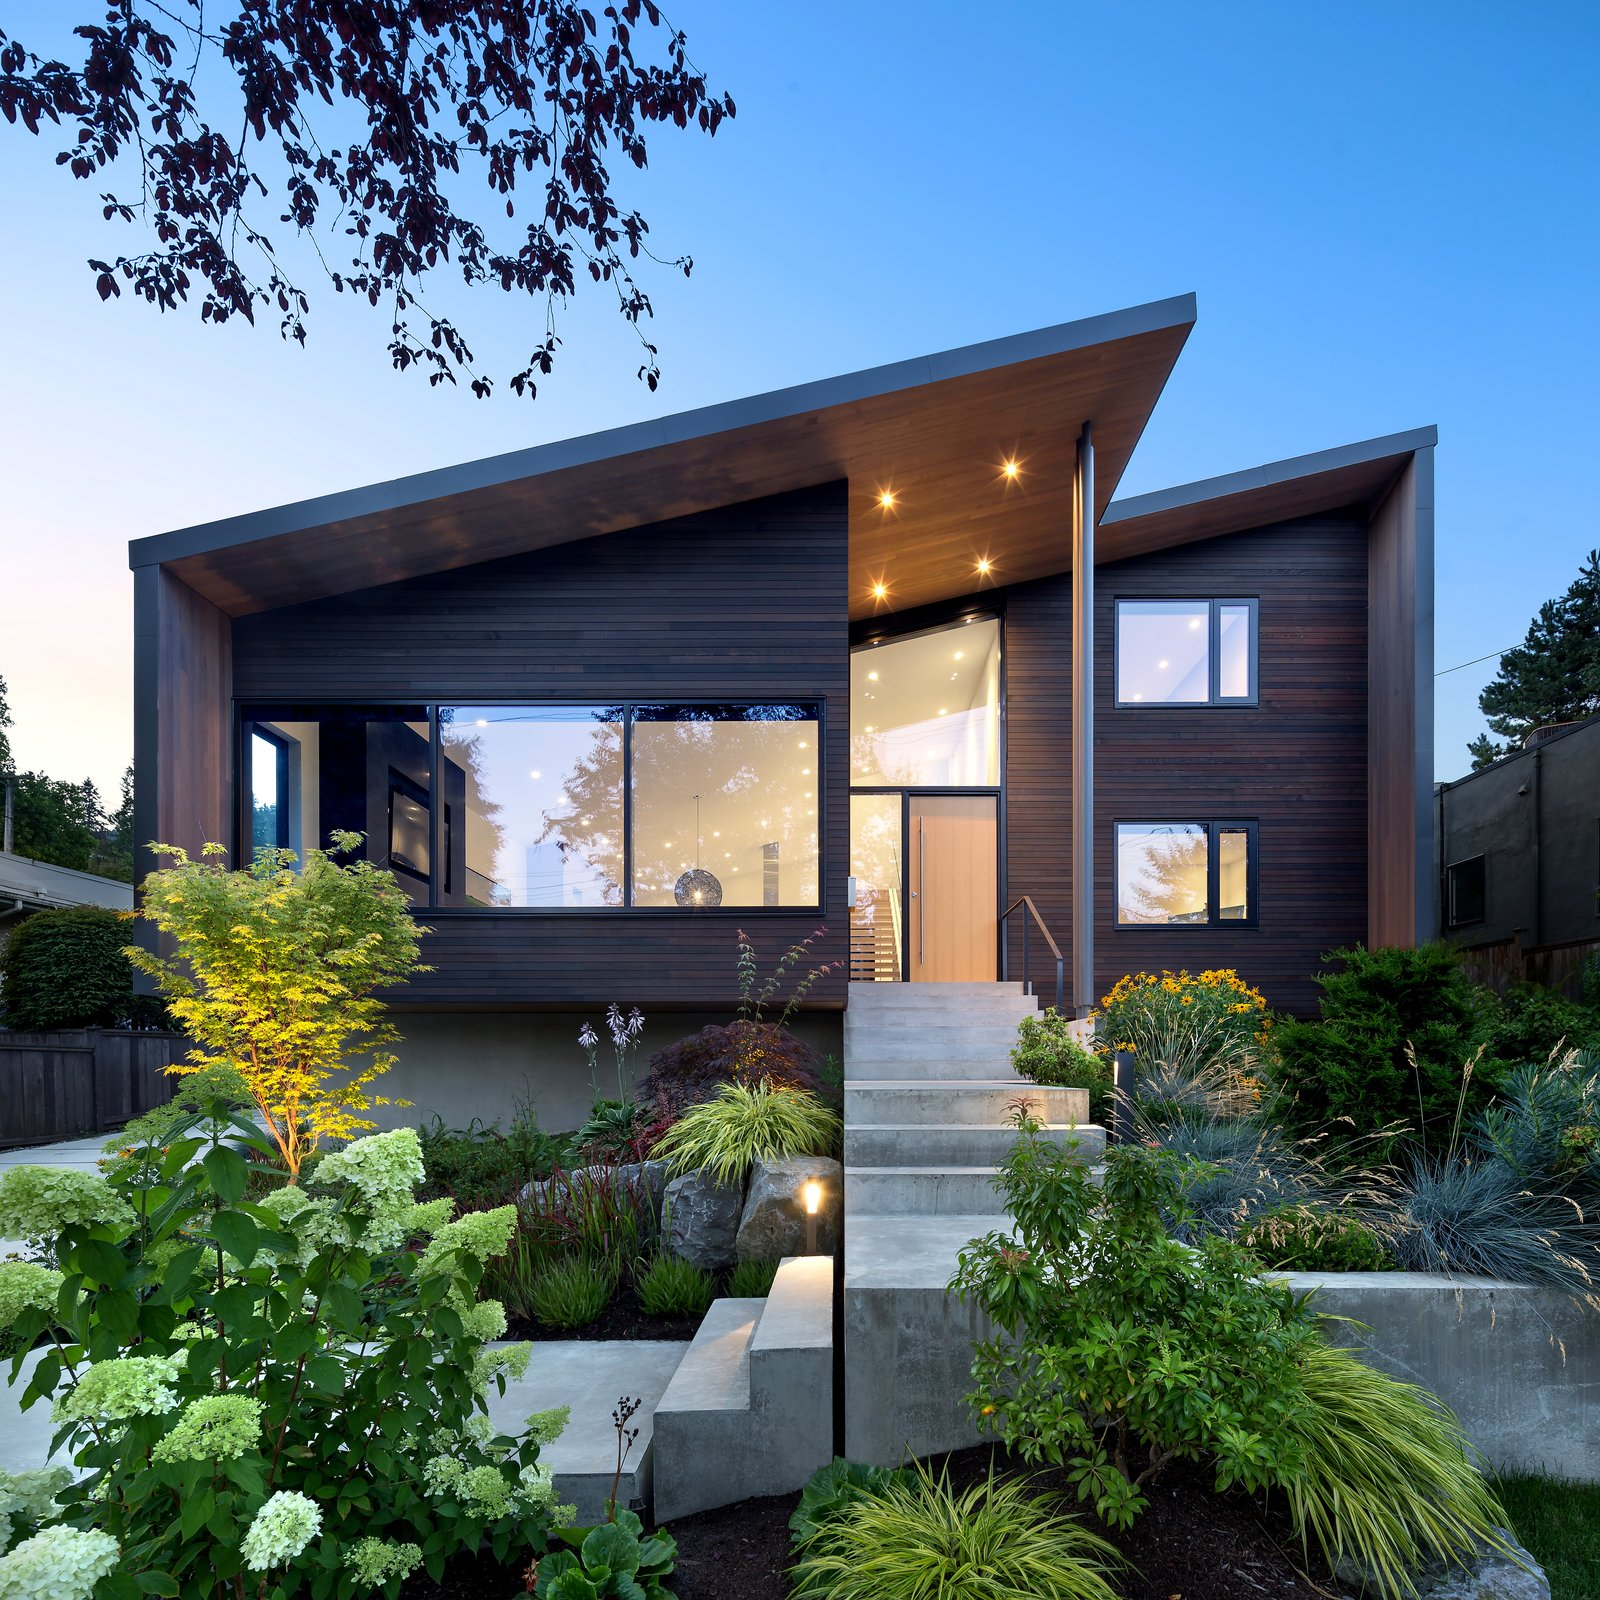 exterior materials include black anodized aluminum windows stained western red cedar and pre painted metal siding parish says these materials complement the new modern volume of the house while also nodding to the existing character of the neighborhood - Modern